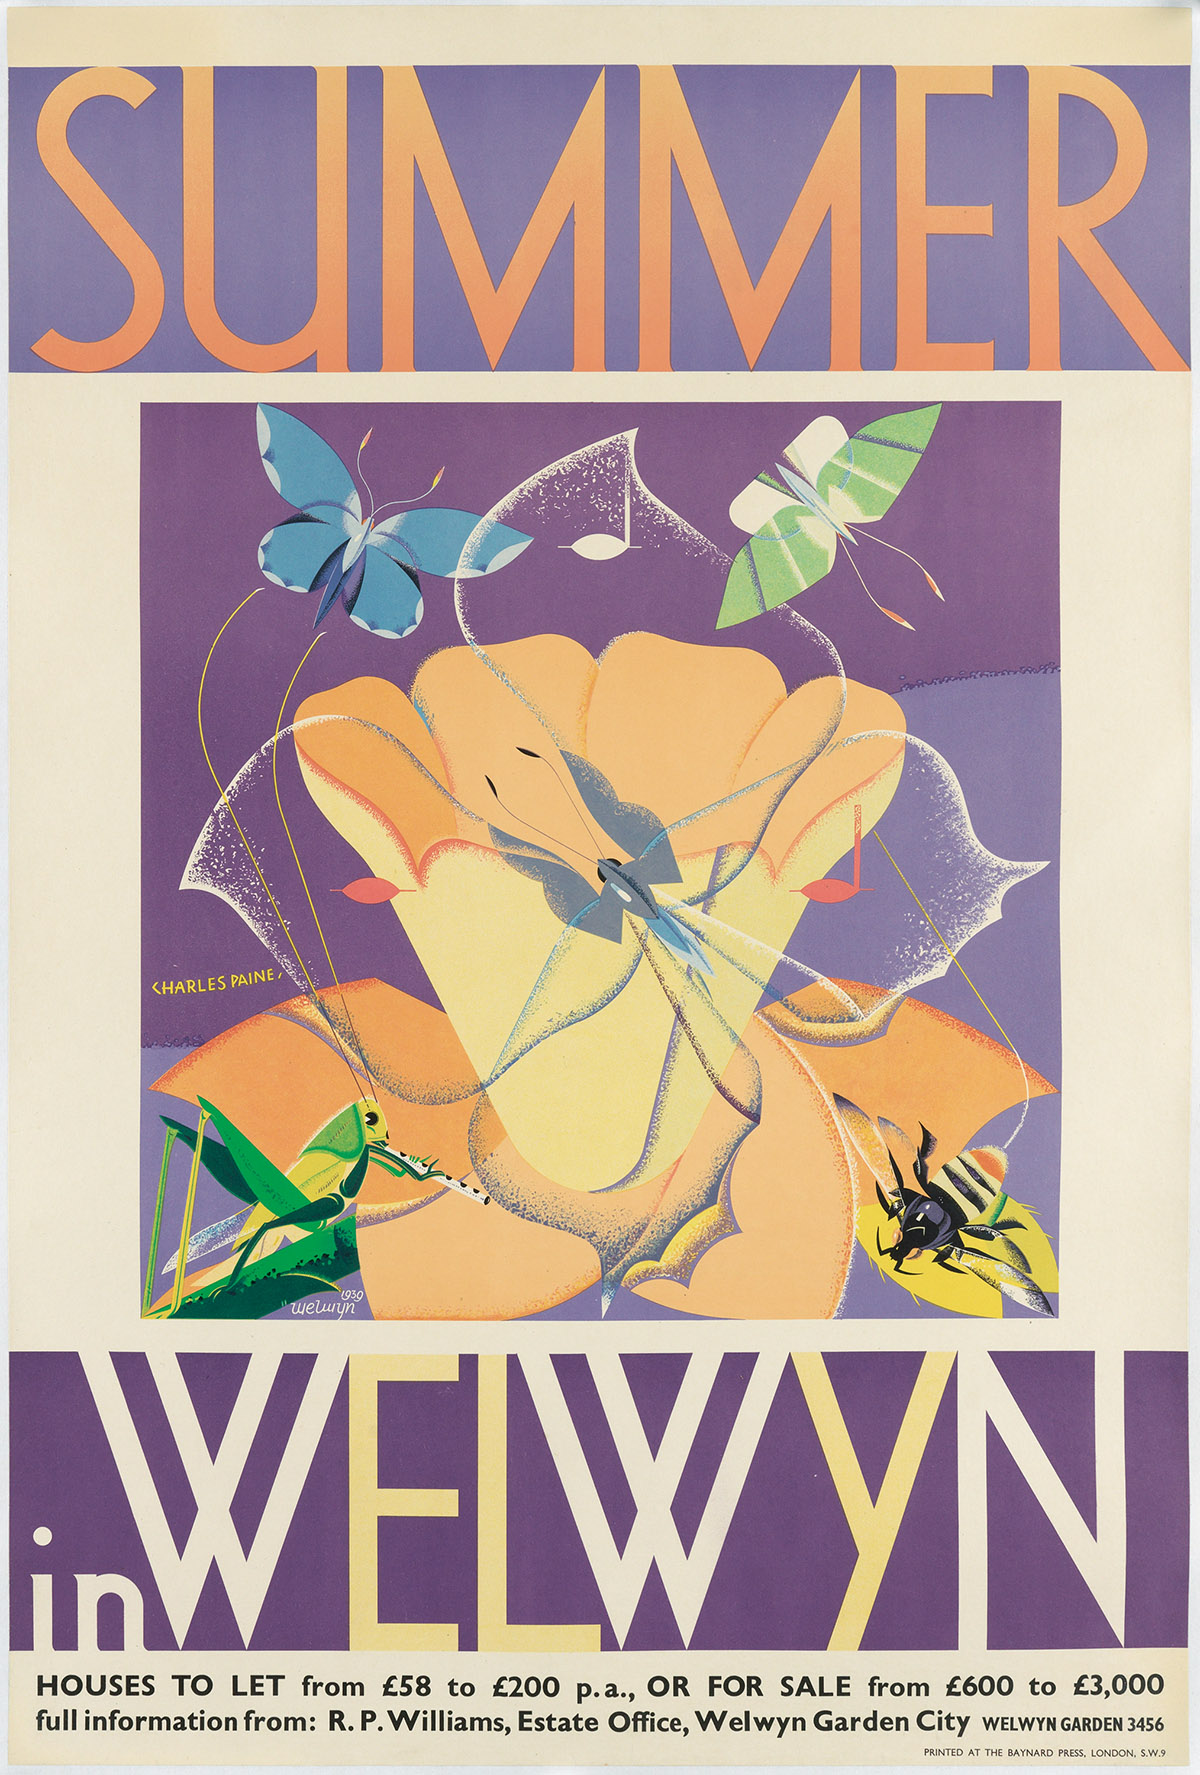 CHARLES-PAINE-(1895-1967)-SUMMER-IN-WELWYN-1939-29x19-inches